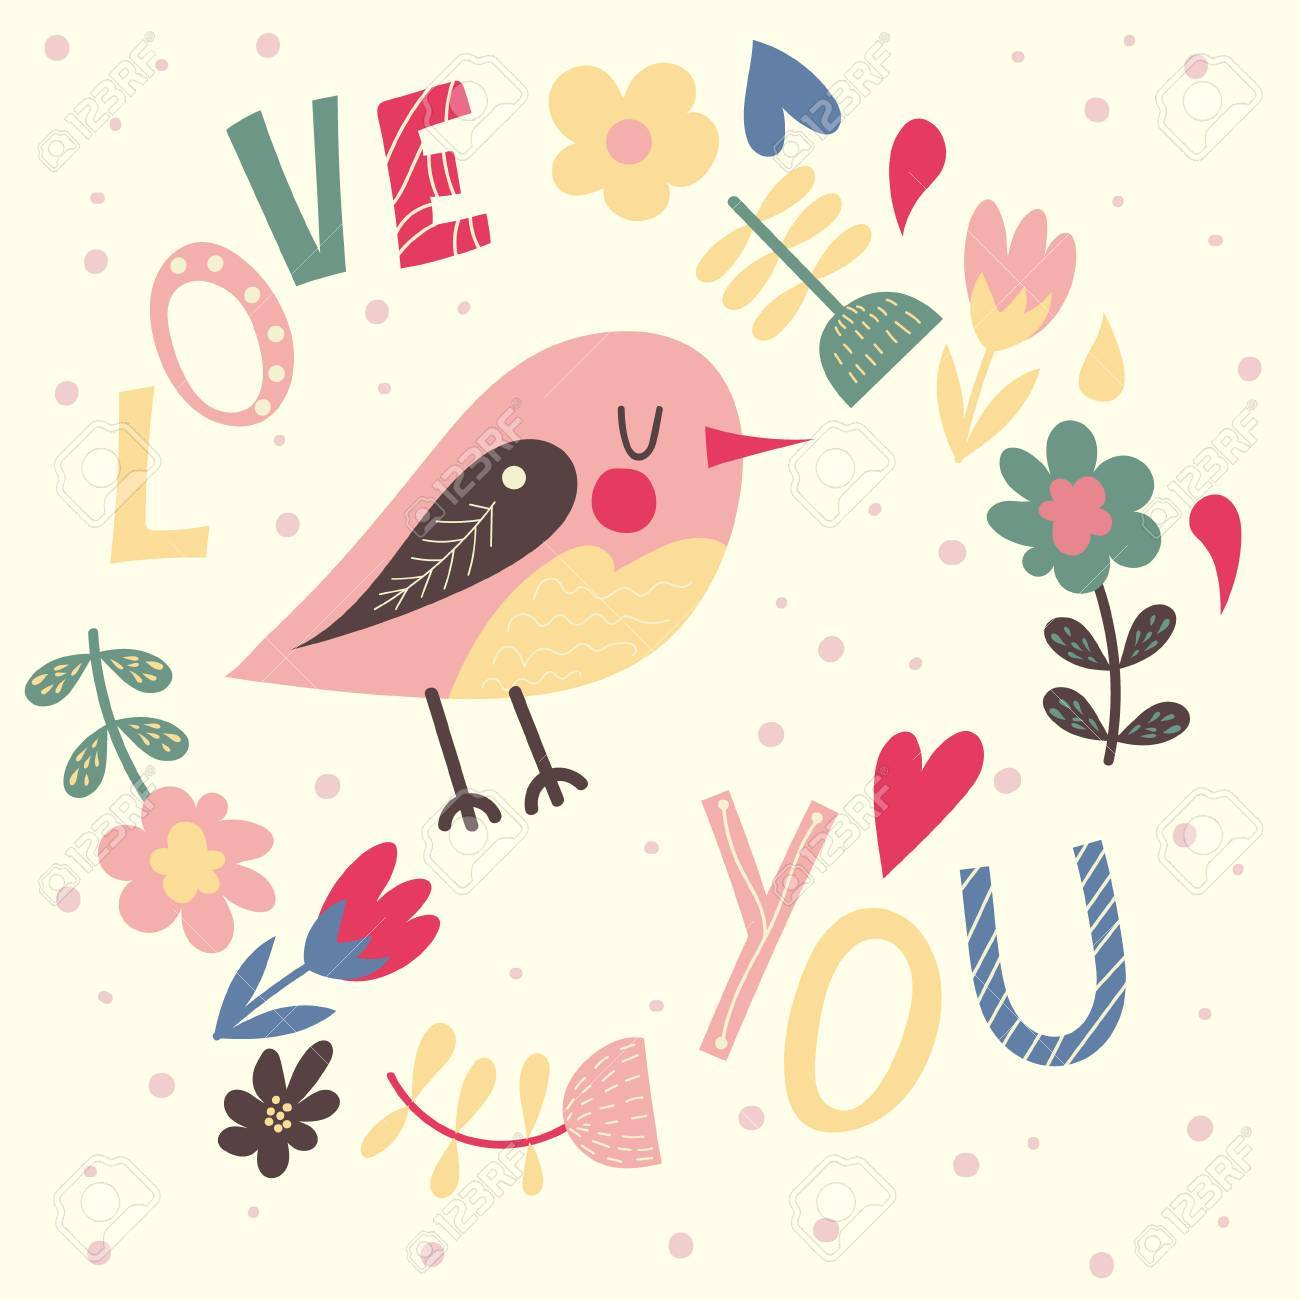 Greeting Card With Cute Bird And Flowers In The Backgroundtemplate